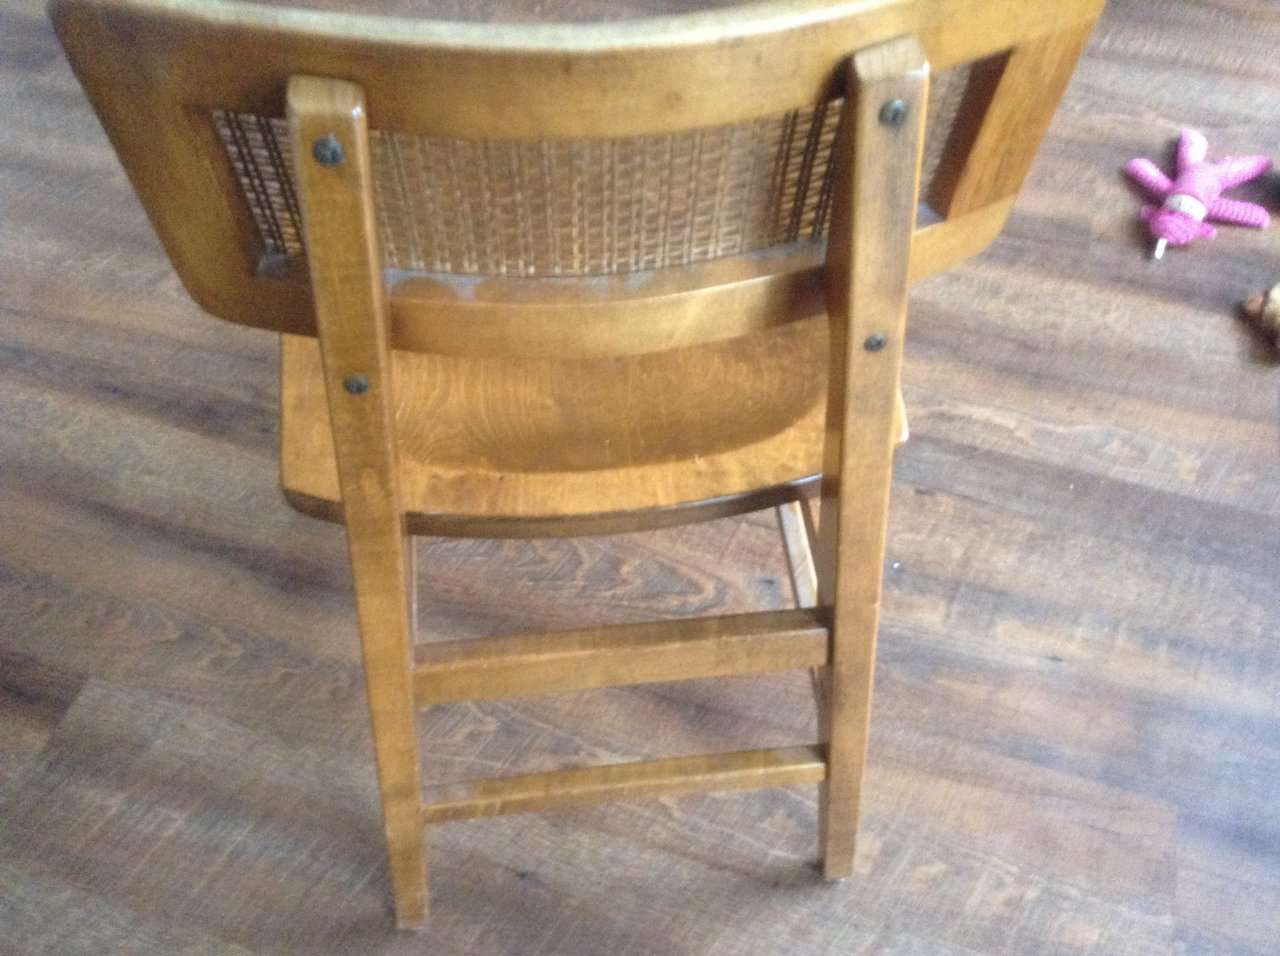 Looking For Chairs This Is A Gunlocke Chair Looking For Year And Value Thanks